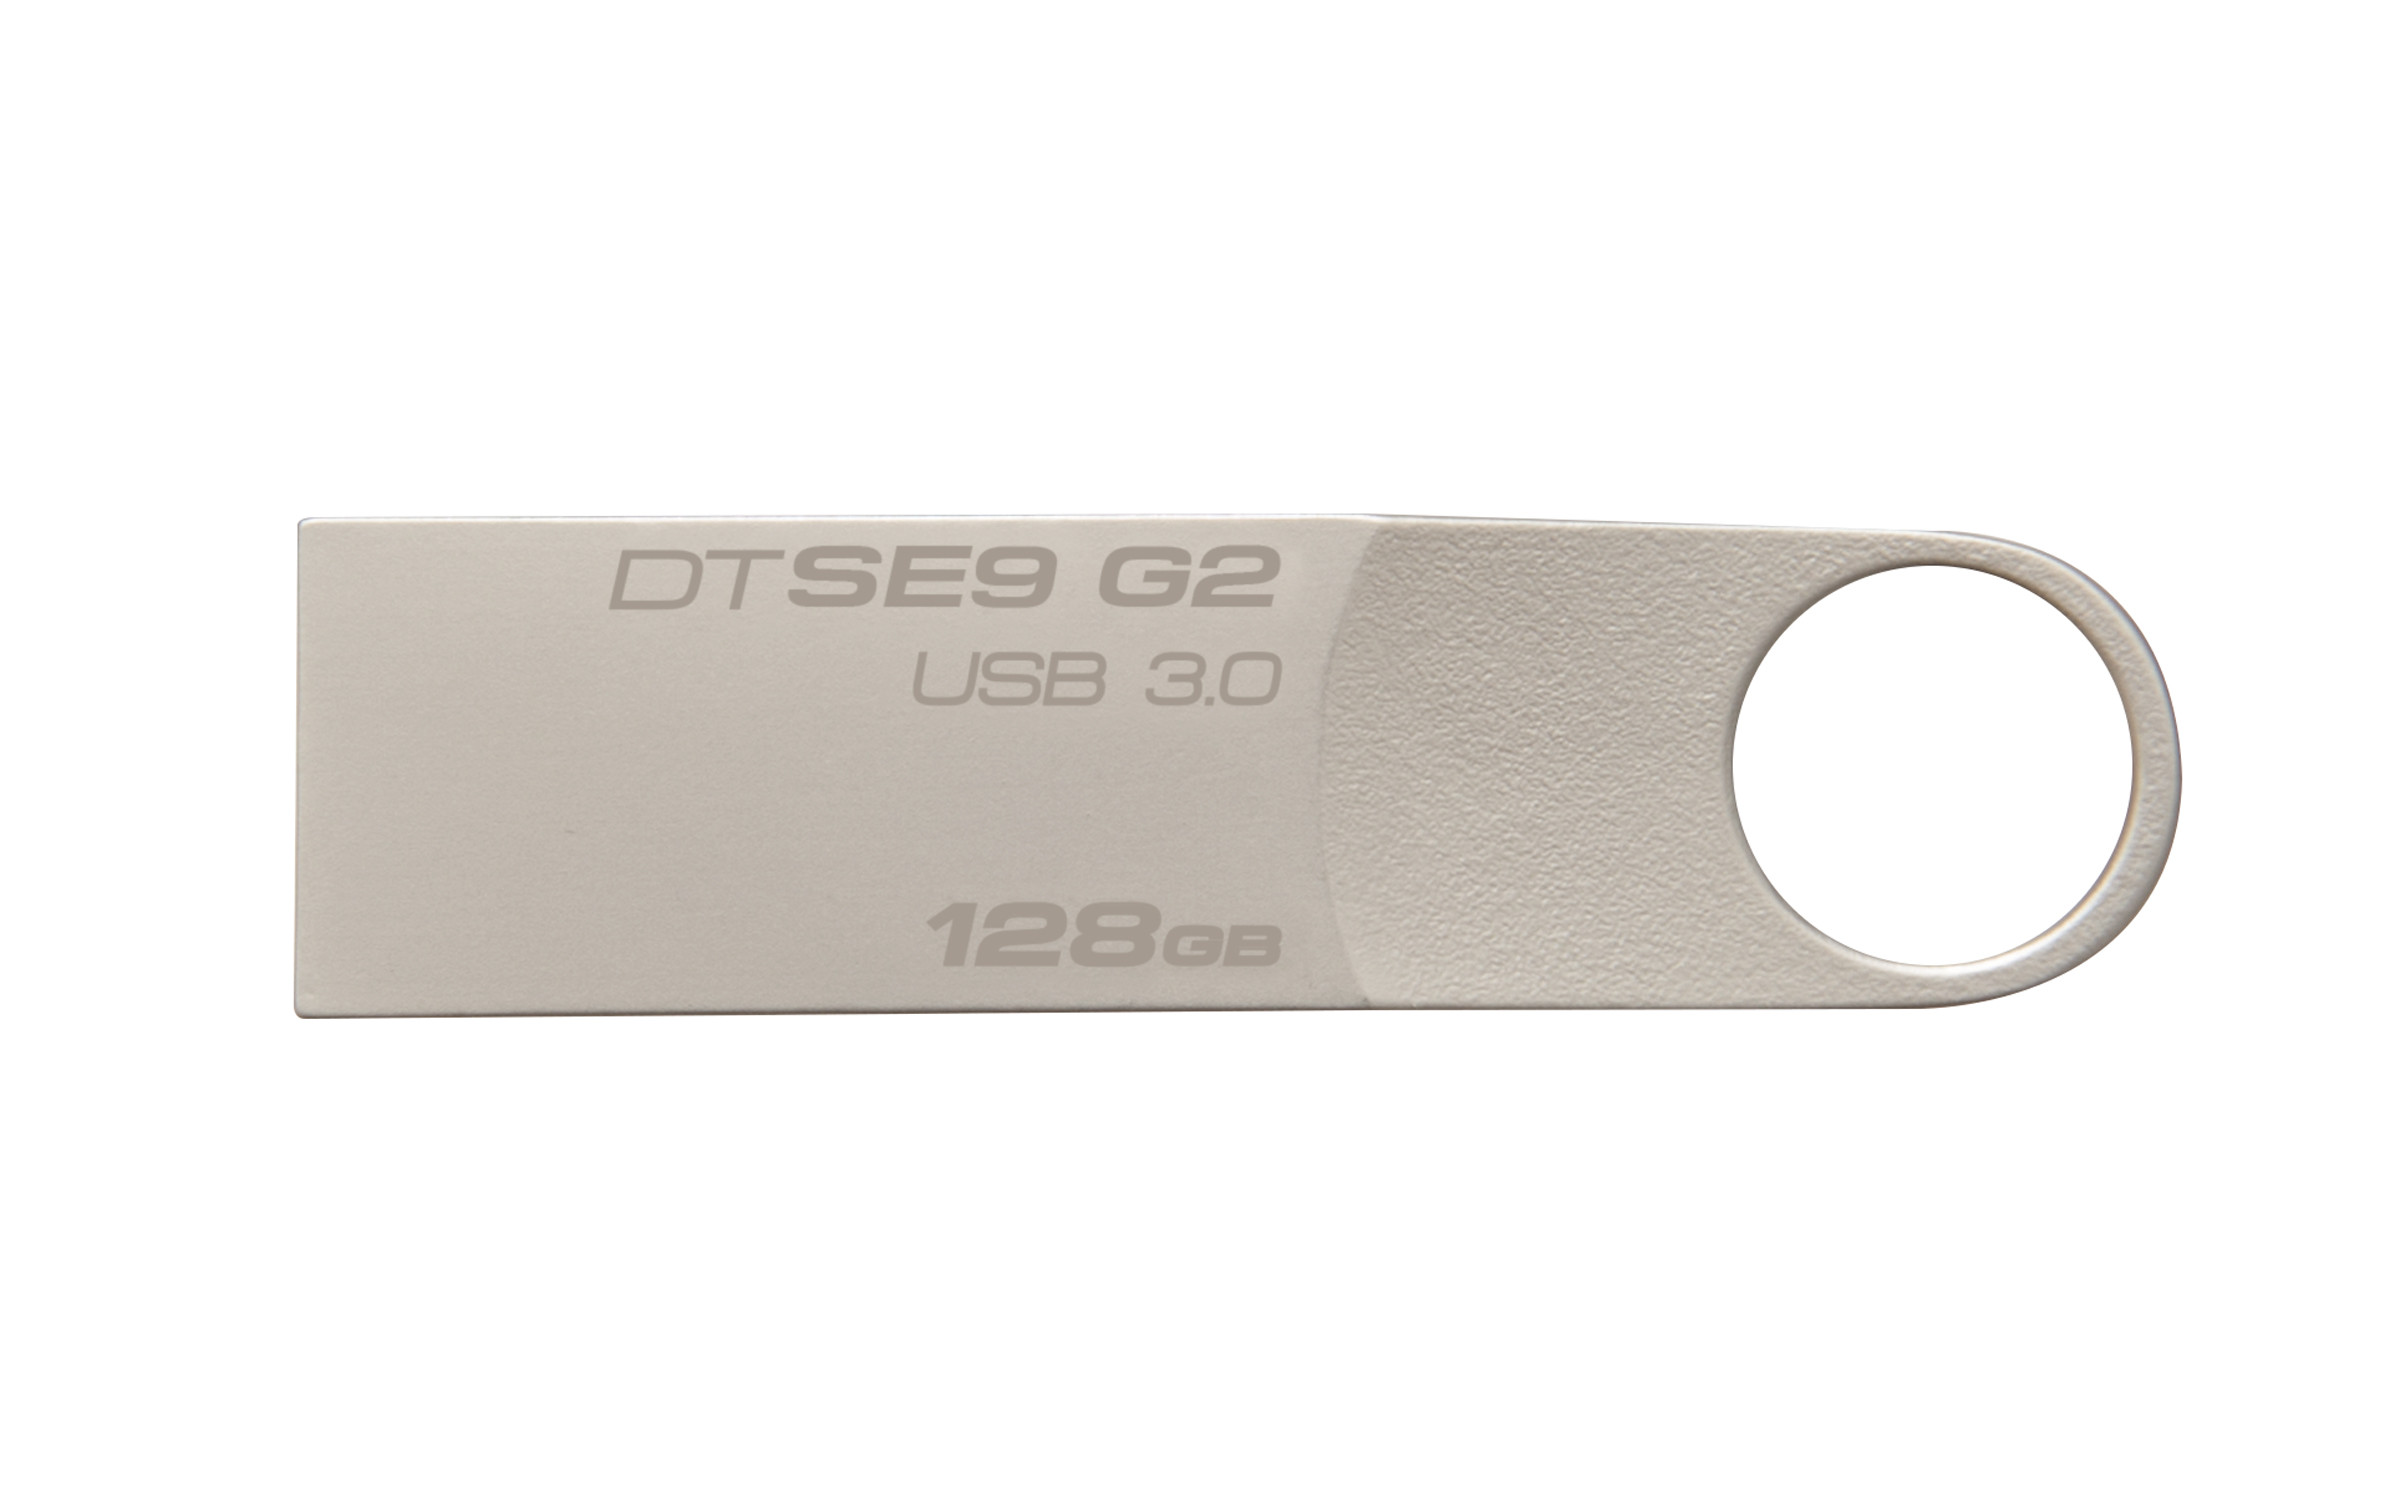 USB Kingston DataTraveler SE9 G2 128GB 3.0